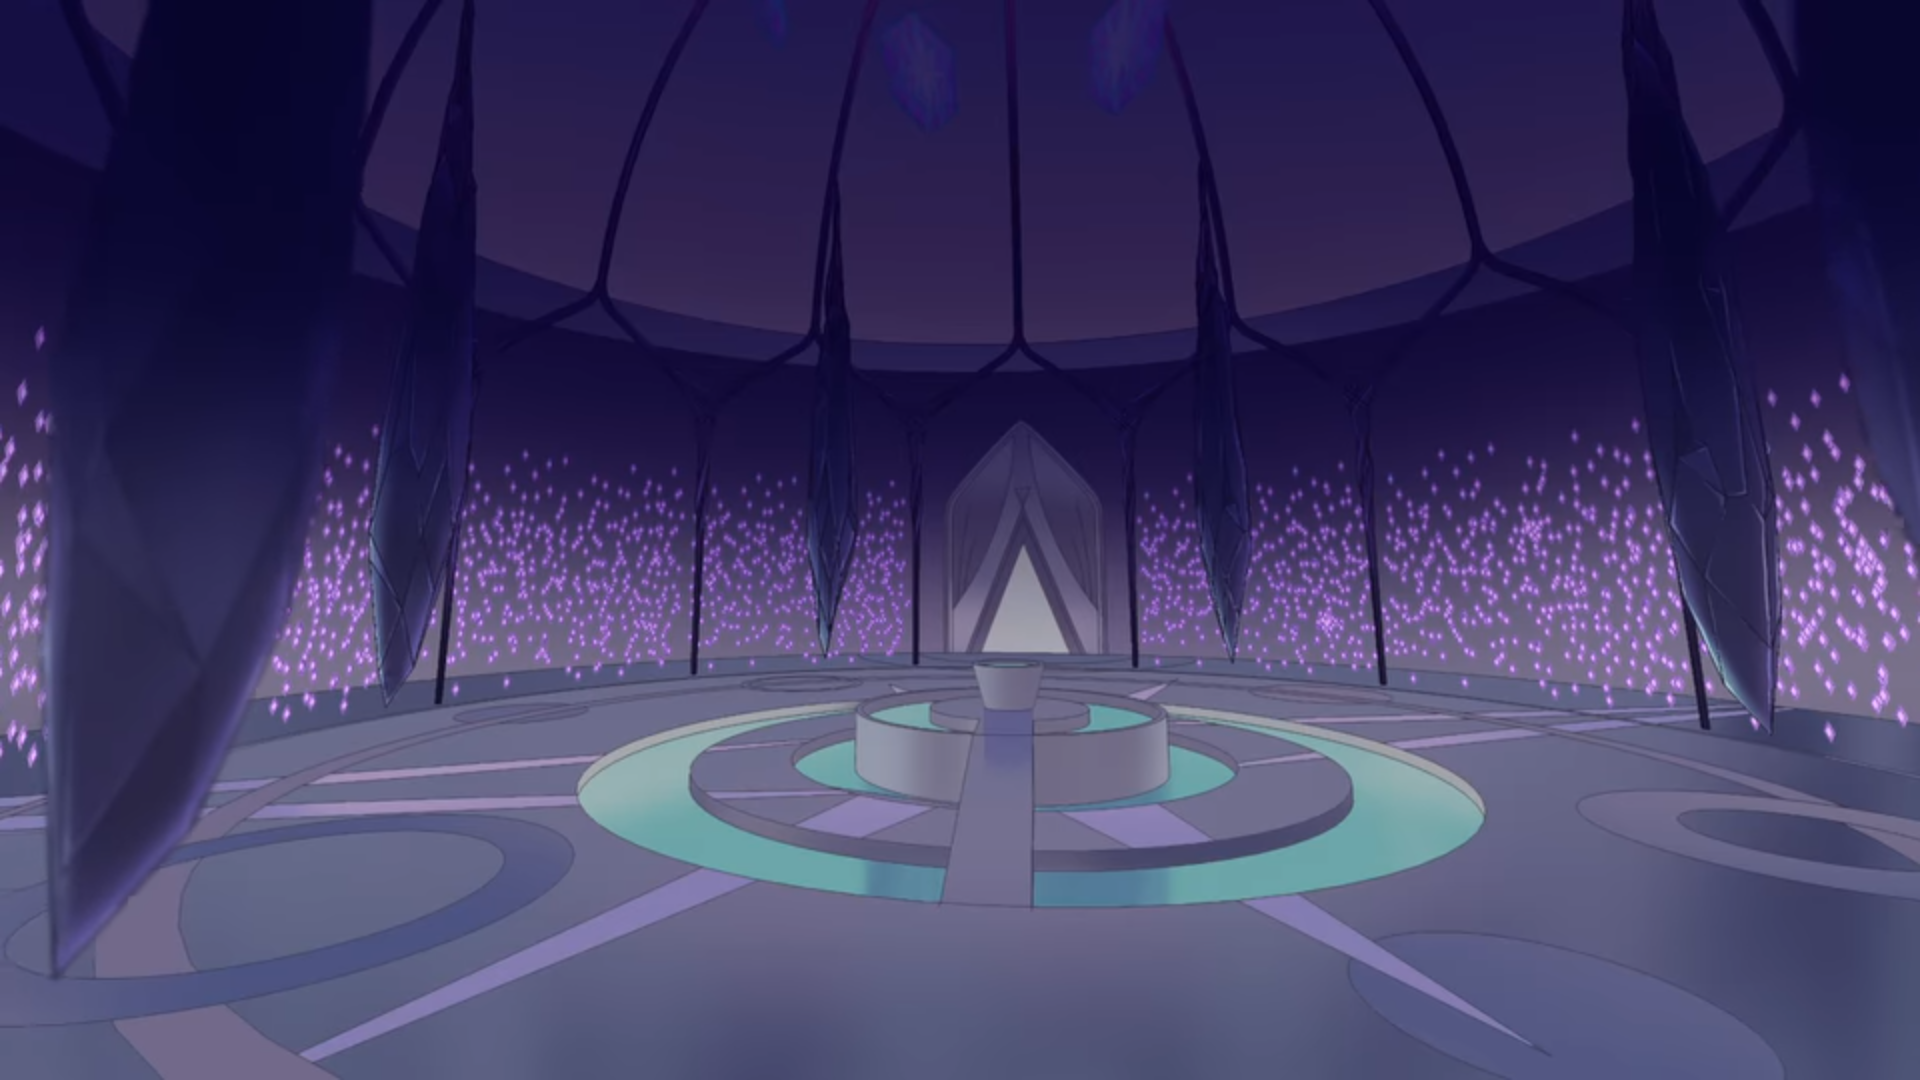 Hall of Sorcerers